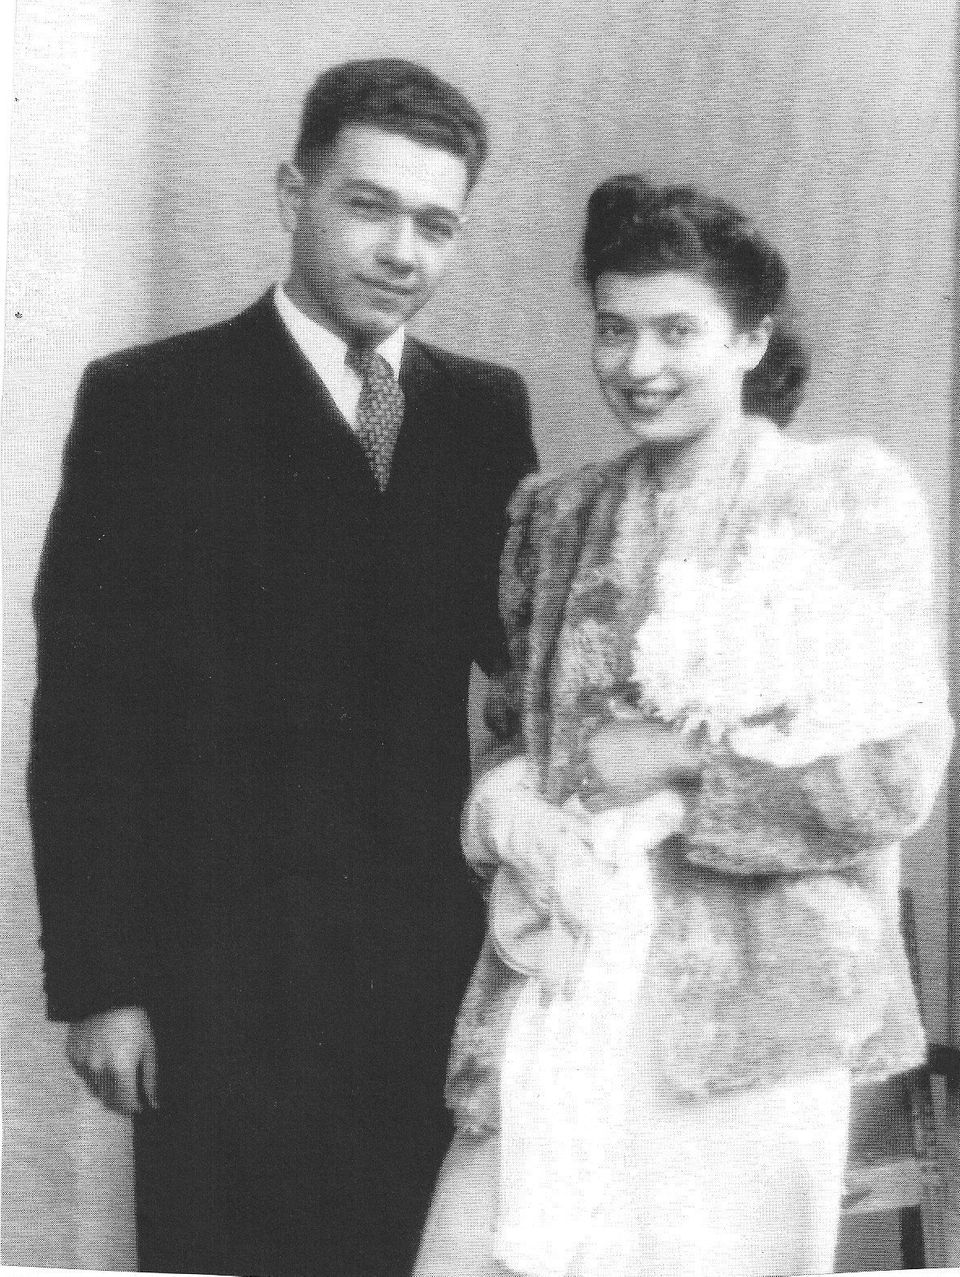 Kammerling married Herta Plaschkes in 1944. She too was brought to safety by the Kindertransport in 1939,...